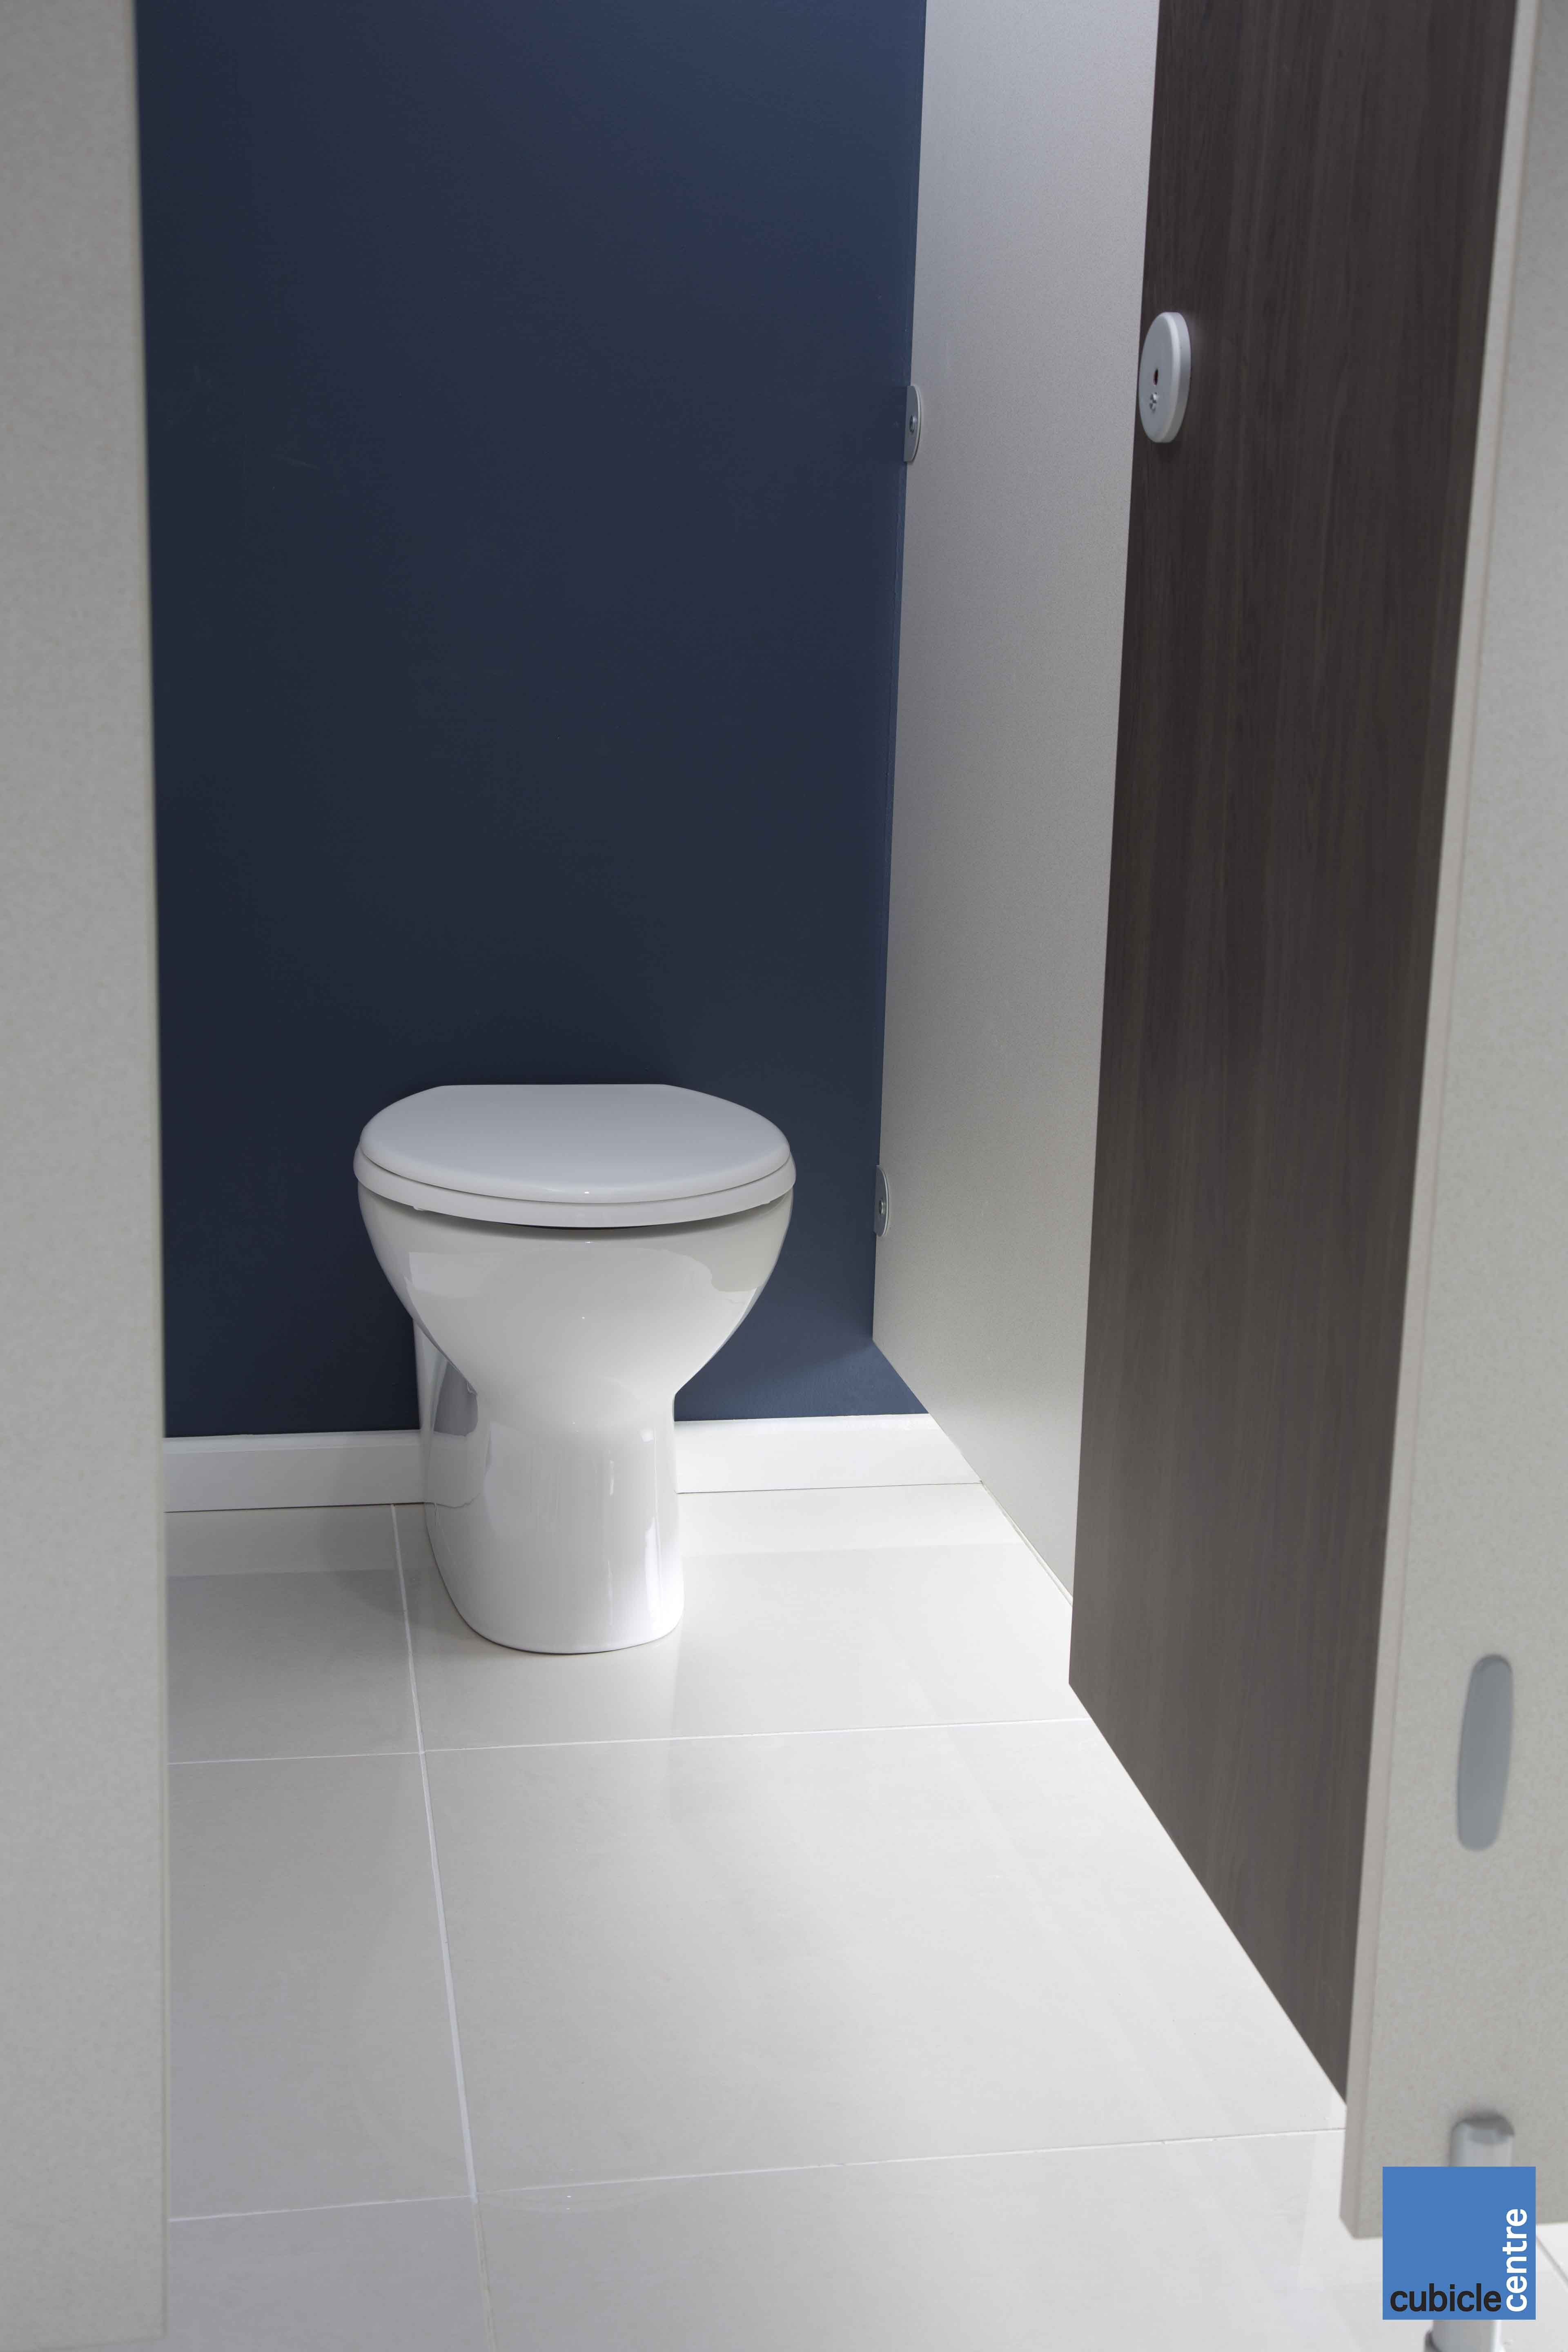 Pin by Andrew Snow on Sanitary Ware | Pinterest | Cubicle, Toilet ...